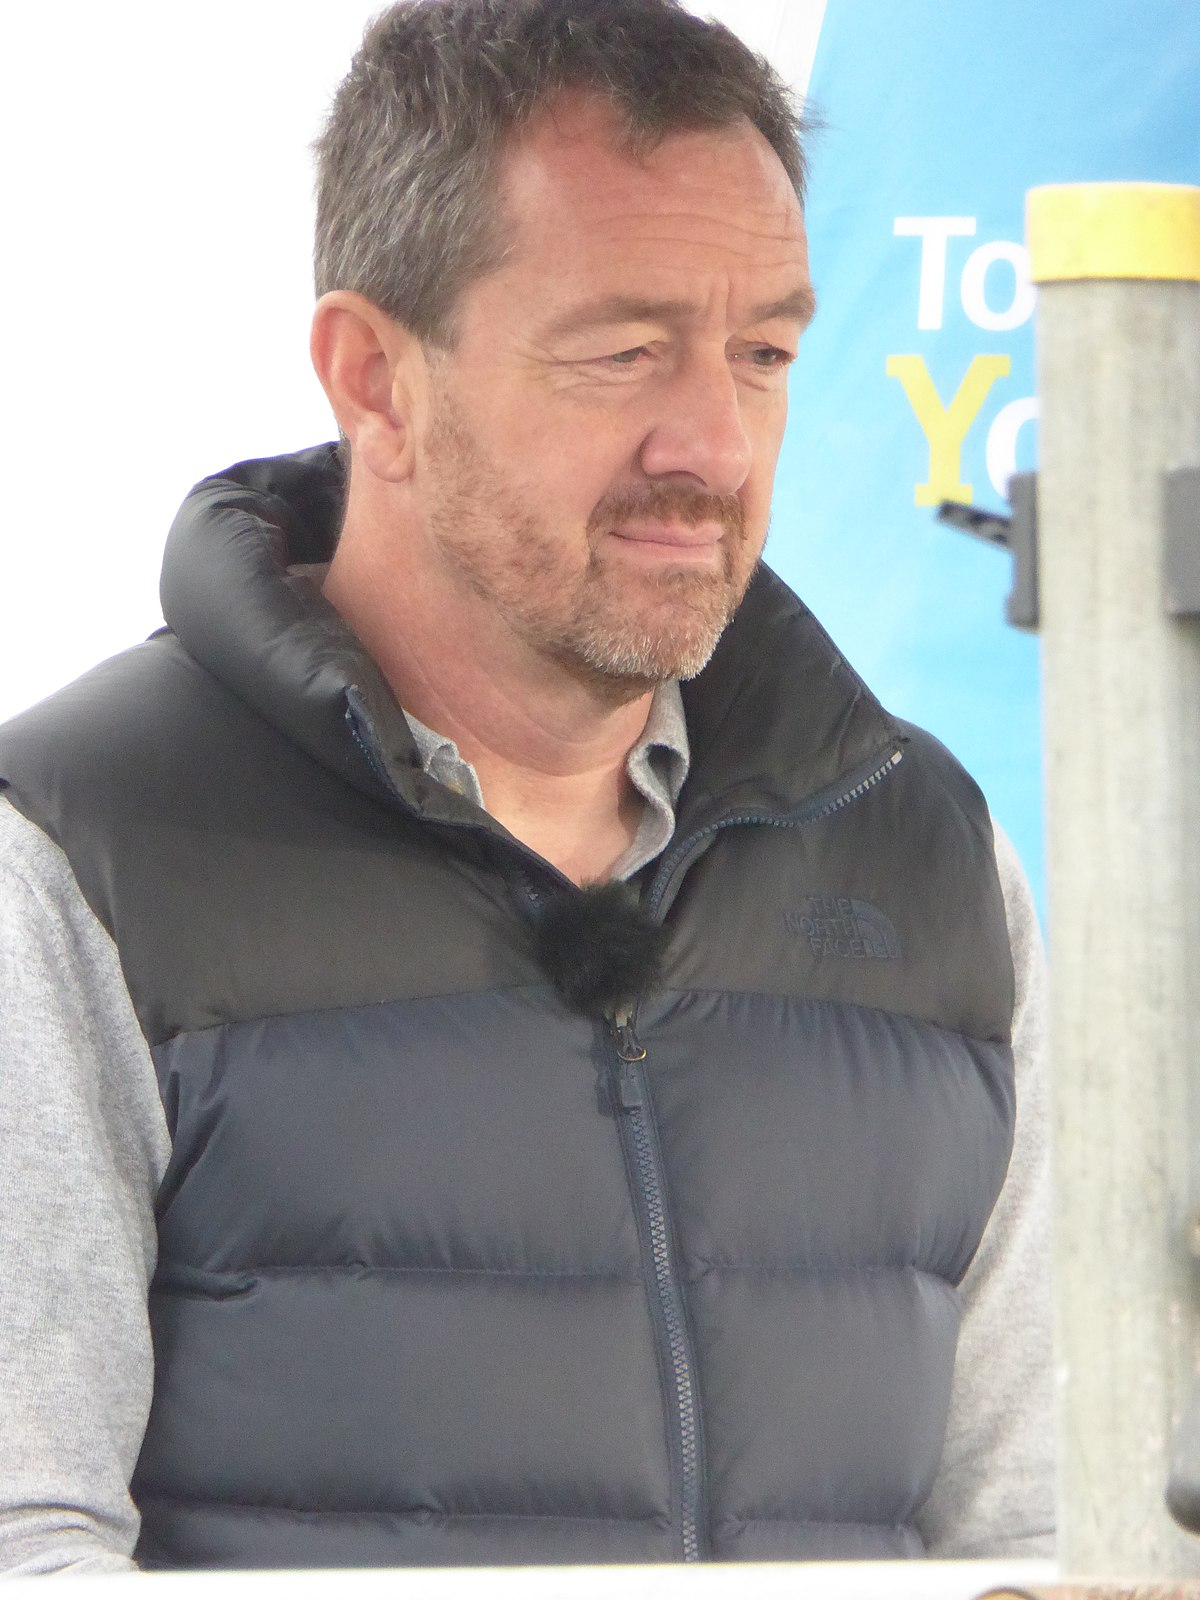 Chris Boardman - Wikipedia